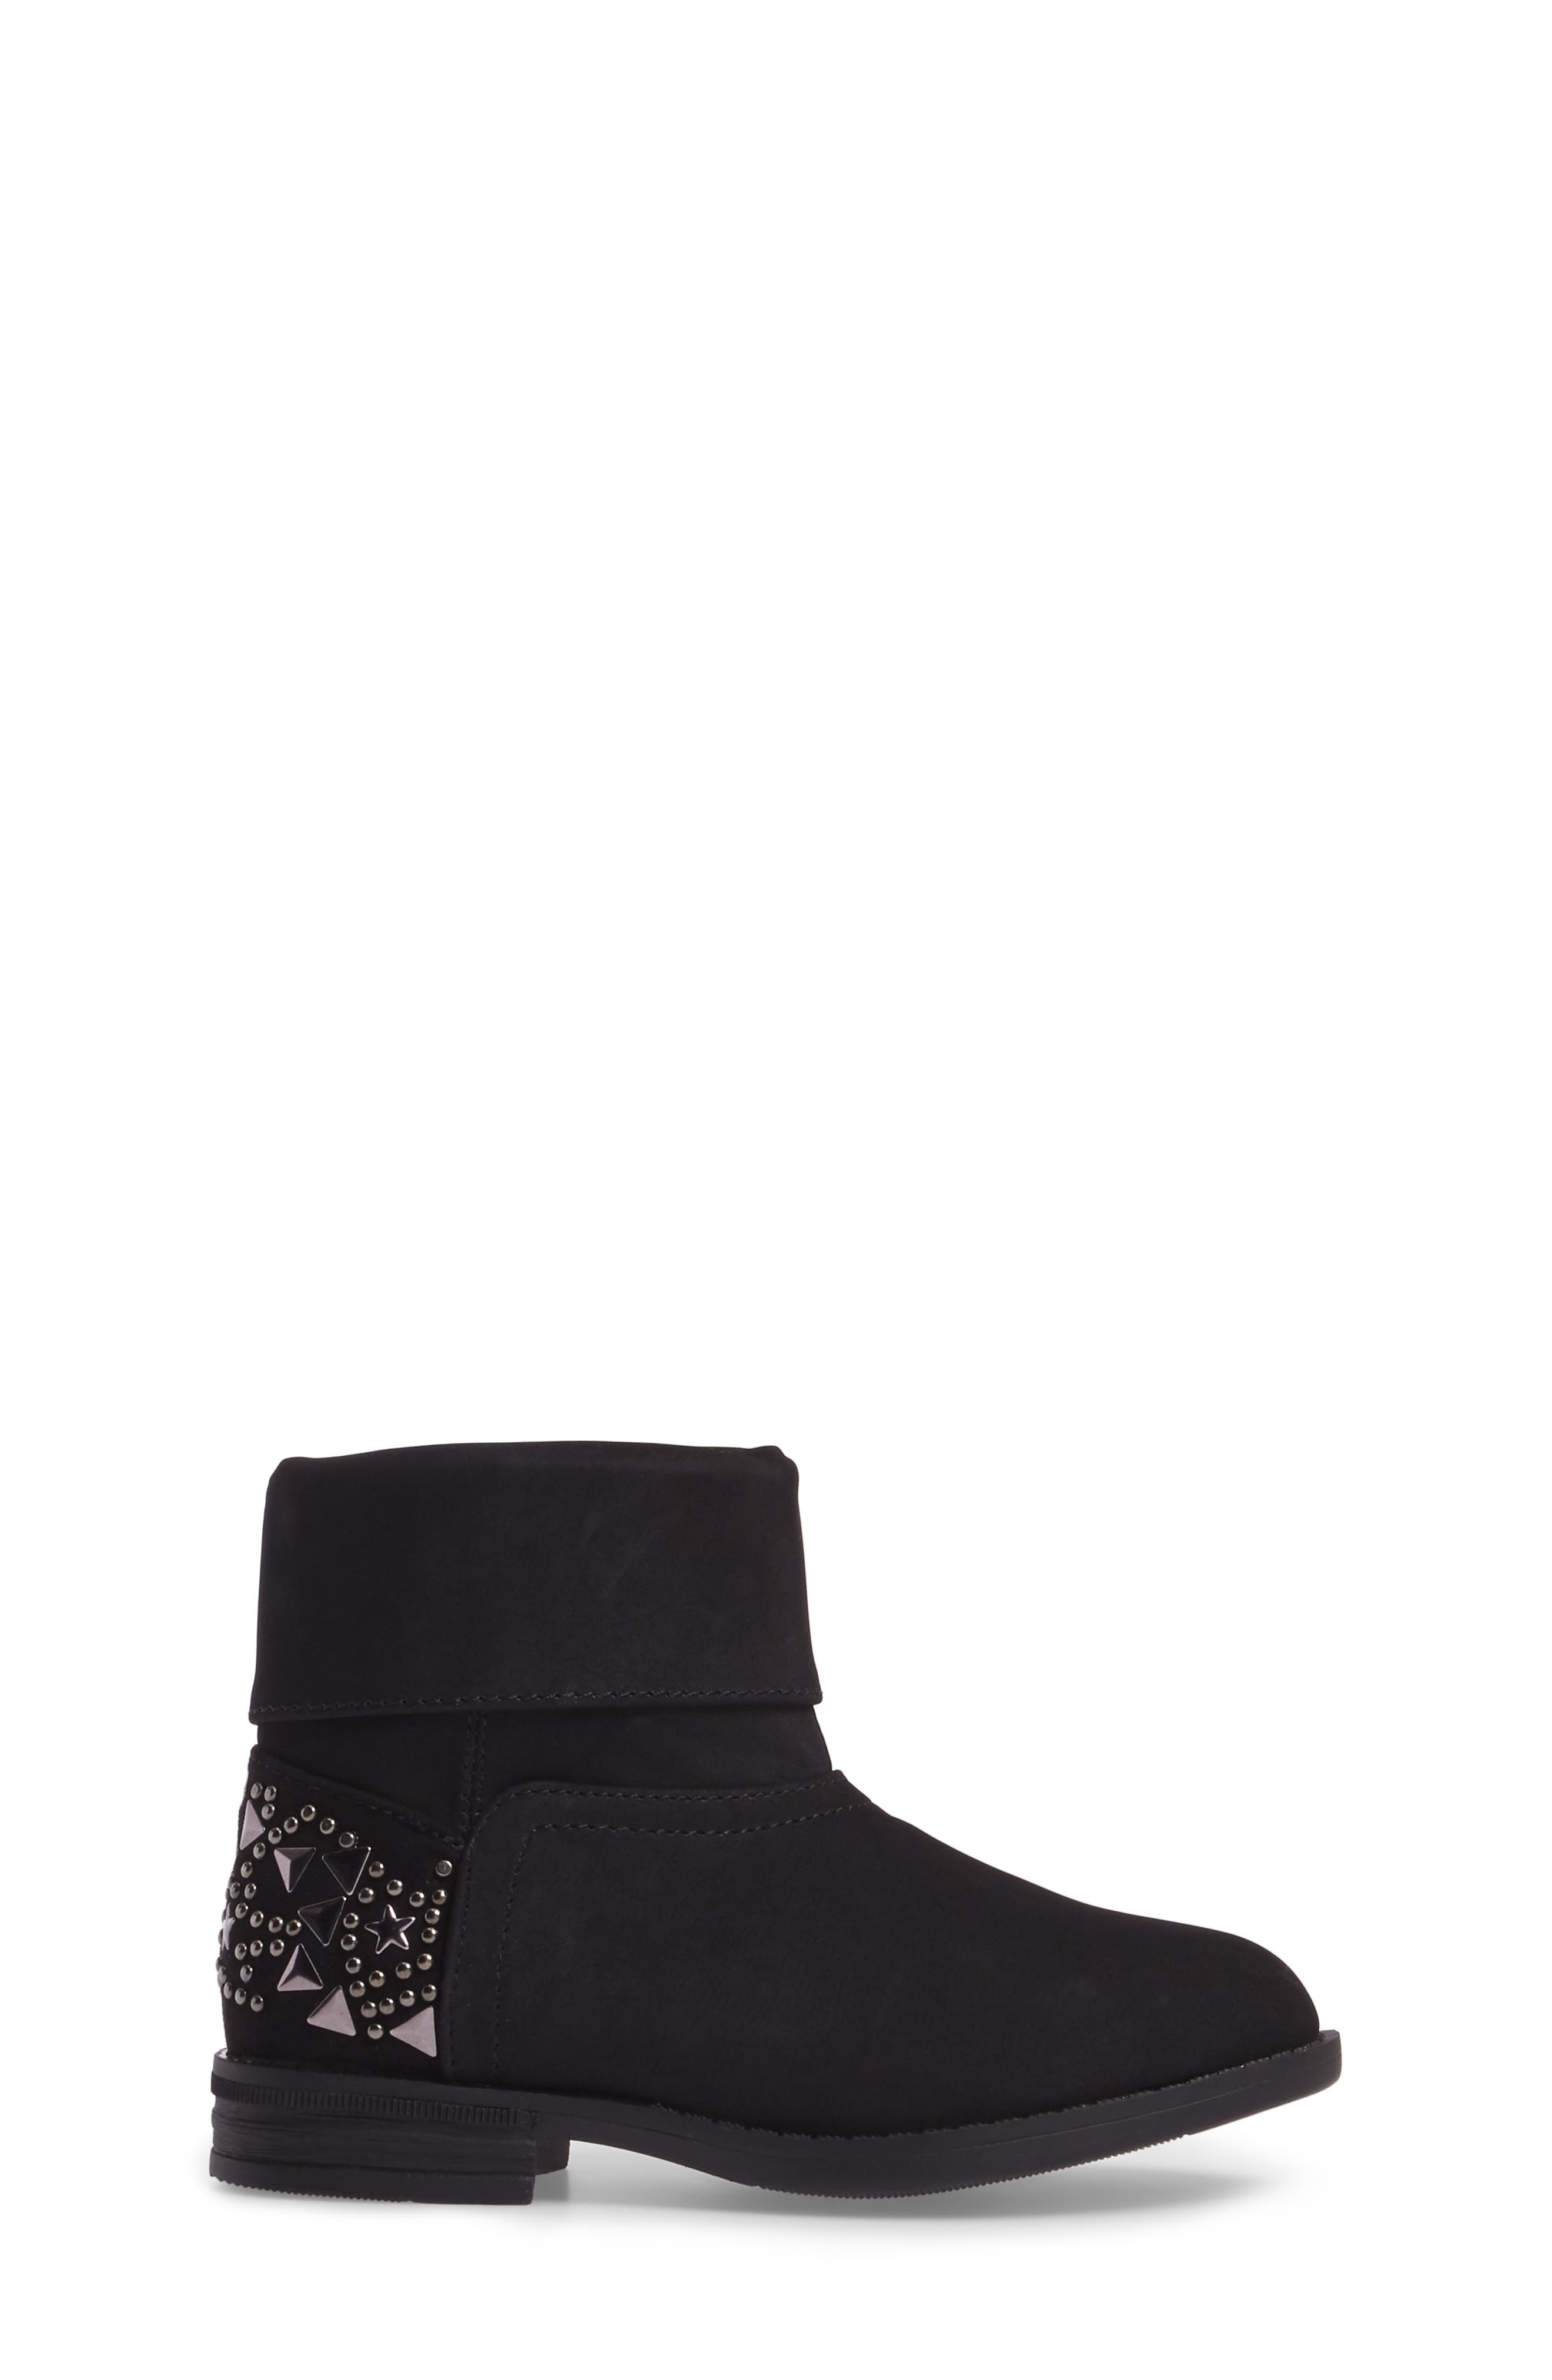 Wild Star Studded Bootie,                             Alternate thumbnail 3, color,                             Black